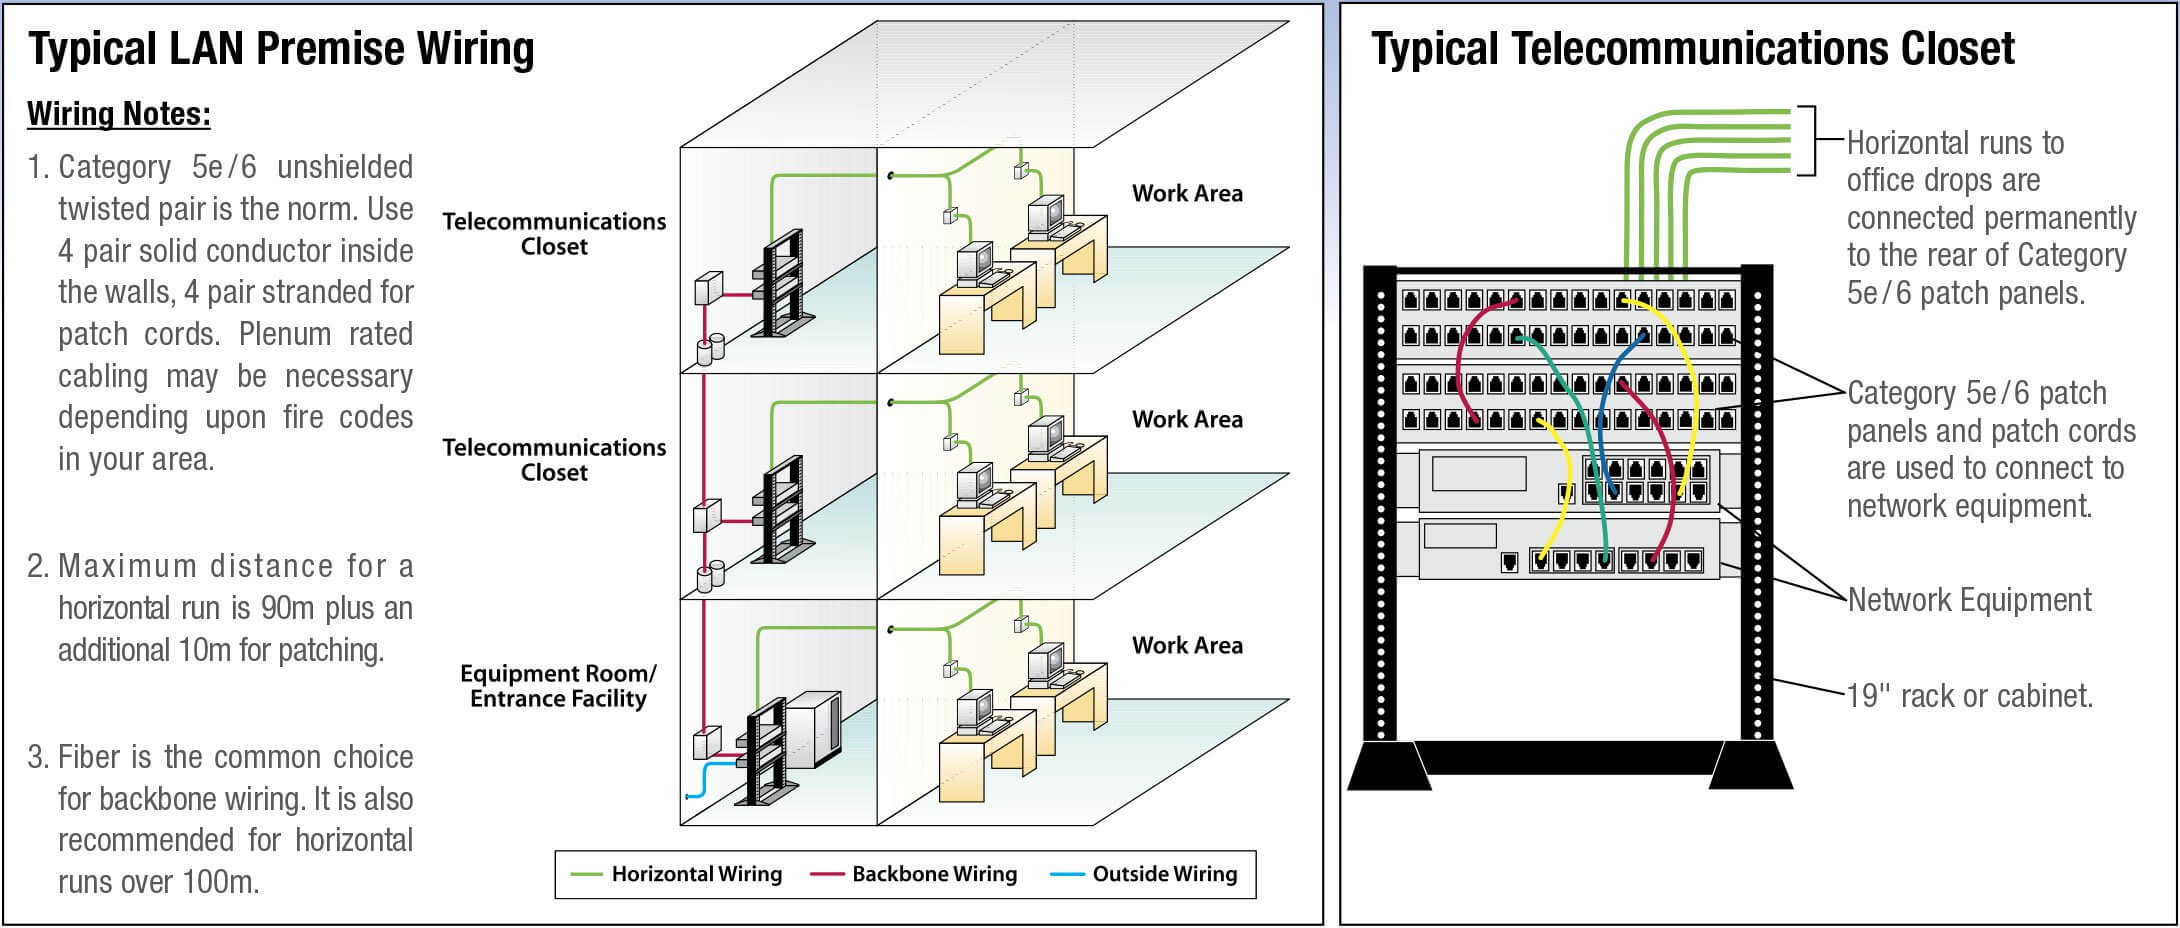 Rj45 Cable Ethernet Assemblies Wiring Inside Walls Typical Lan Premise And Telecommunications Closet